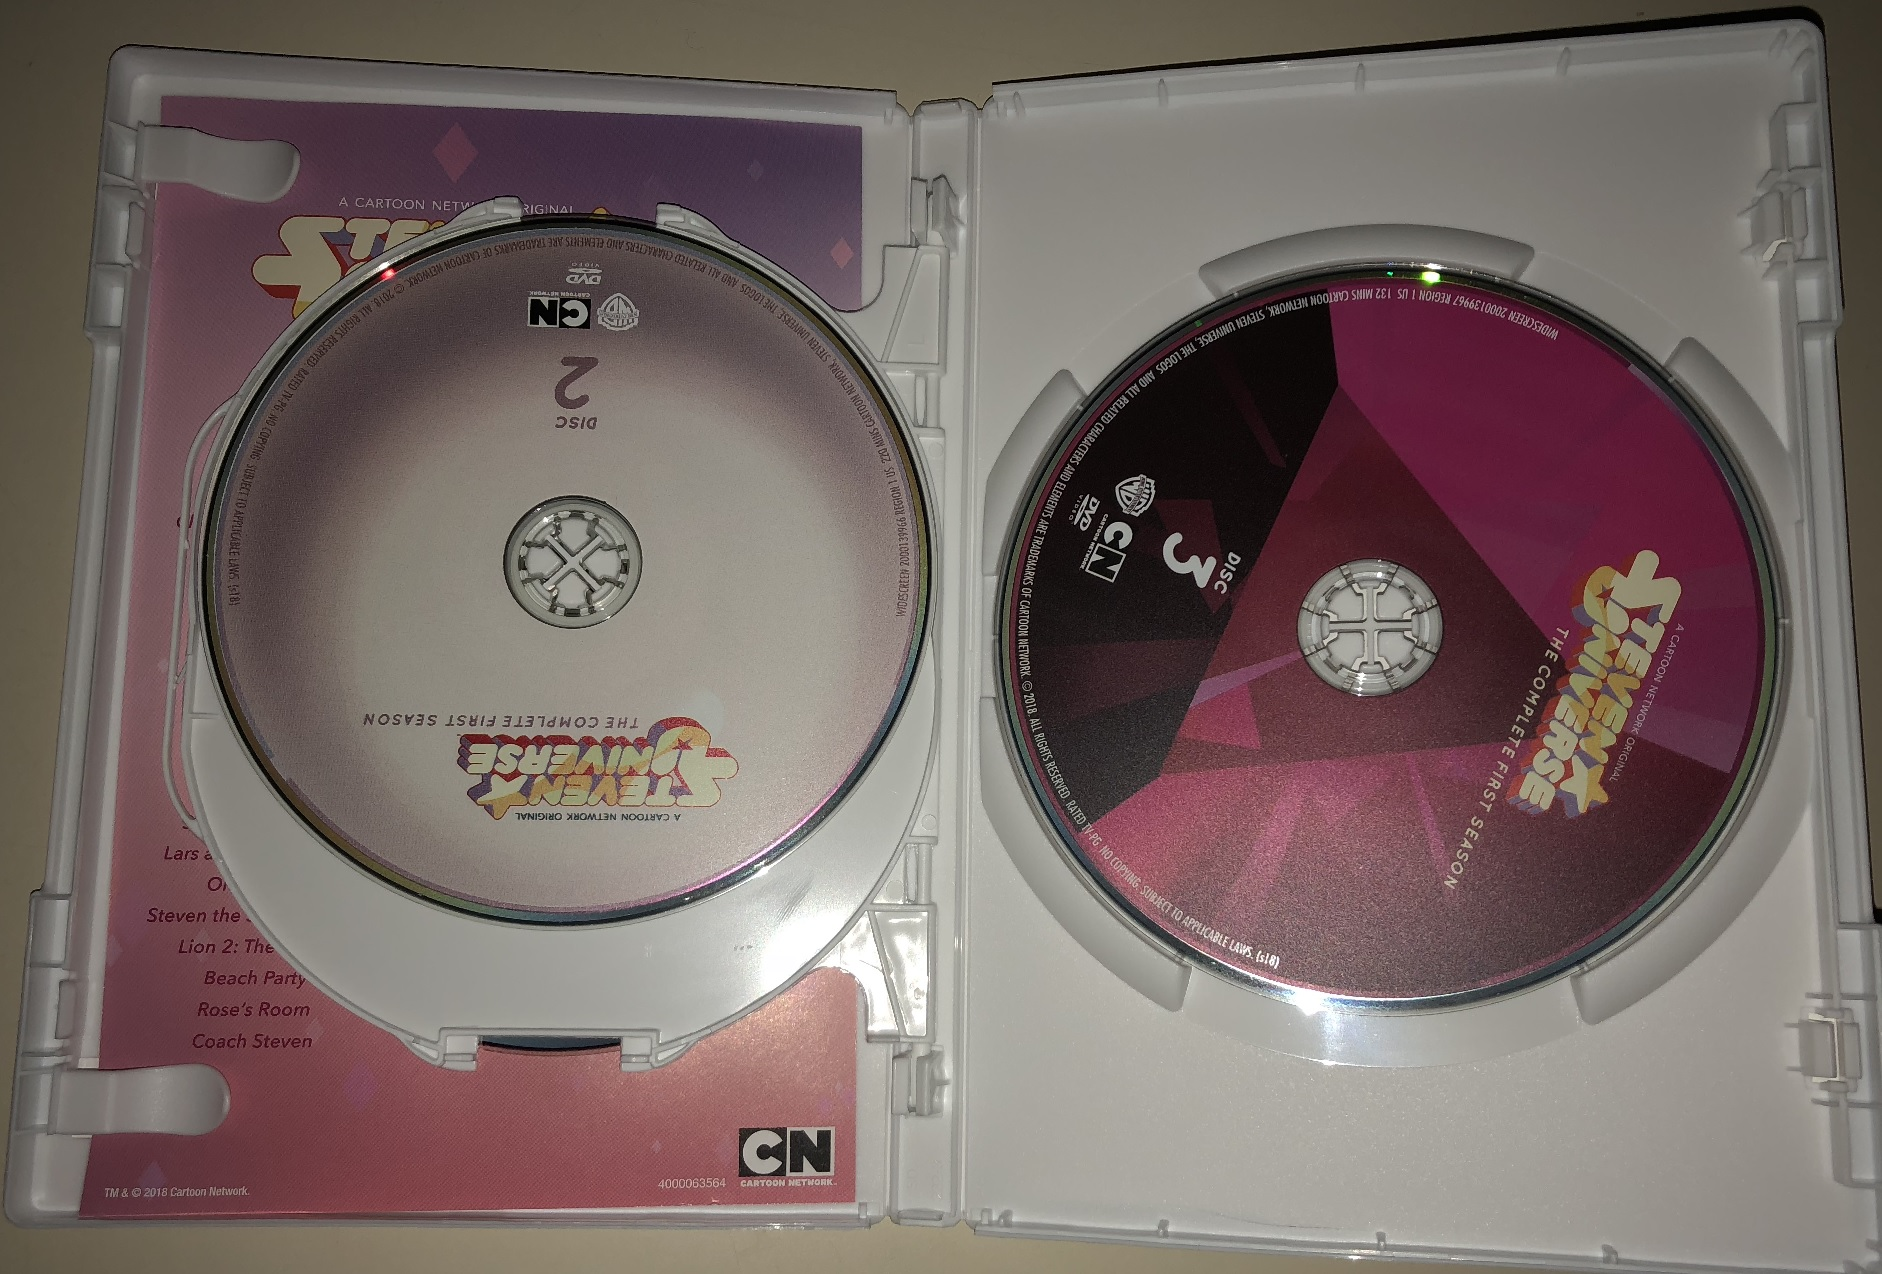 hight resolution of the presentation of the dvd is a major highlight following up on the style cartoon network has previously used for its dvd releases of adventure time